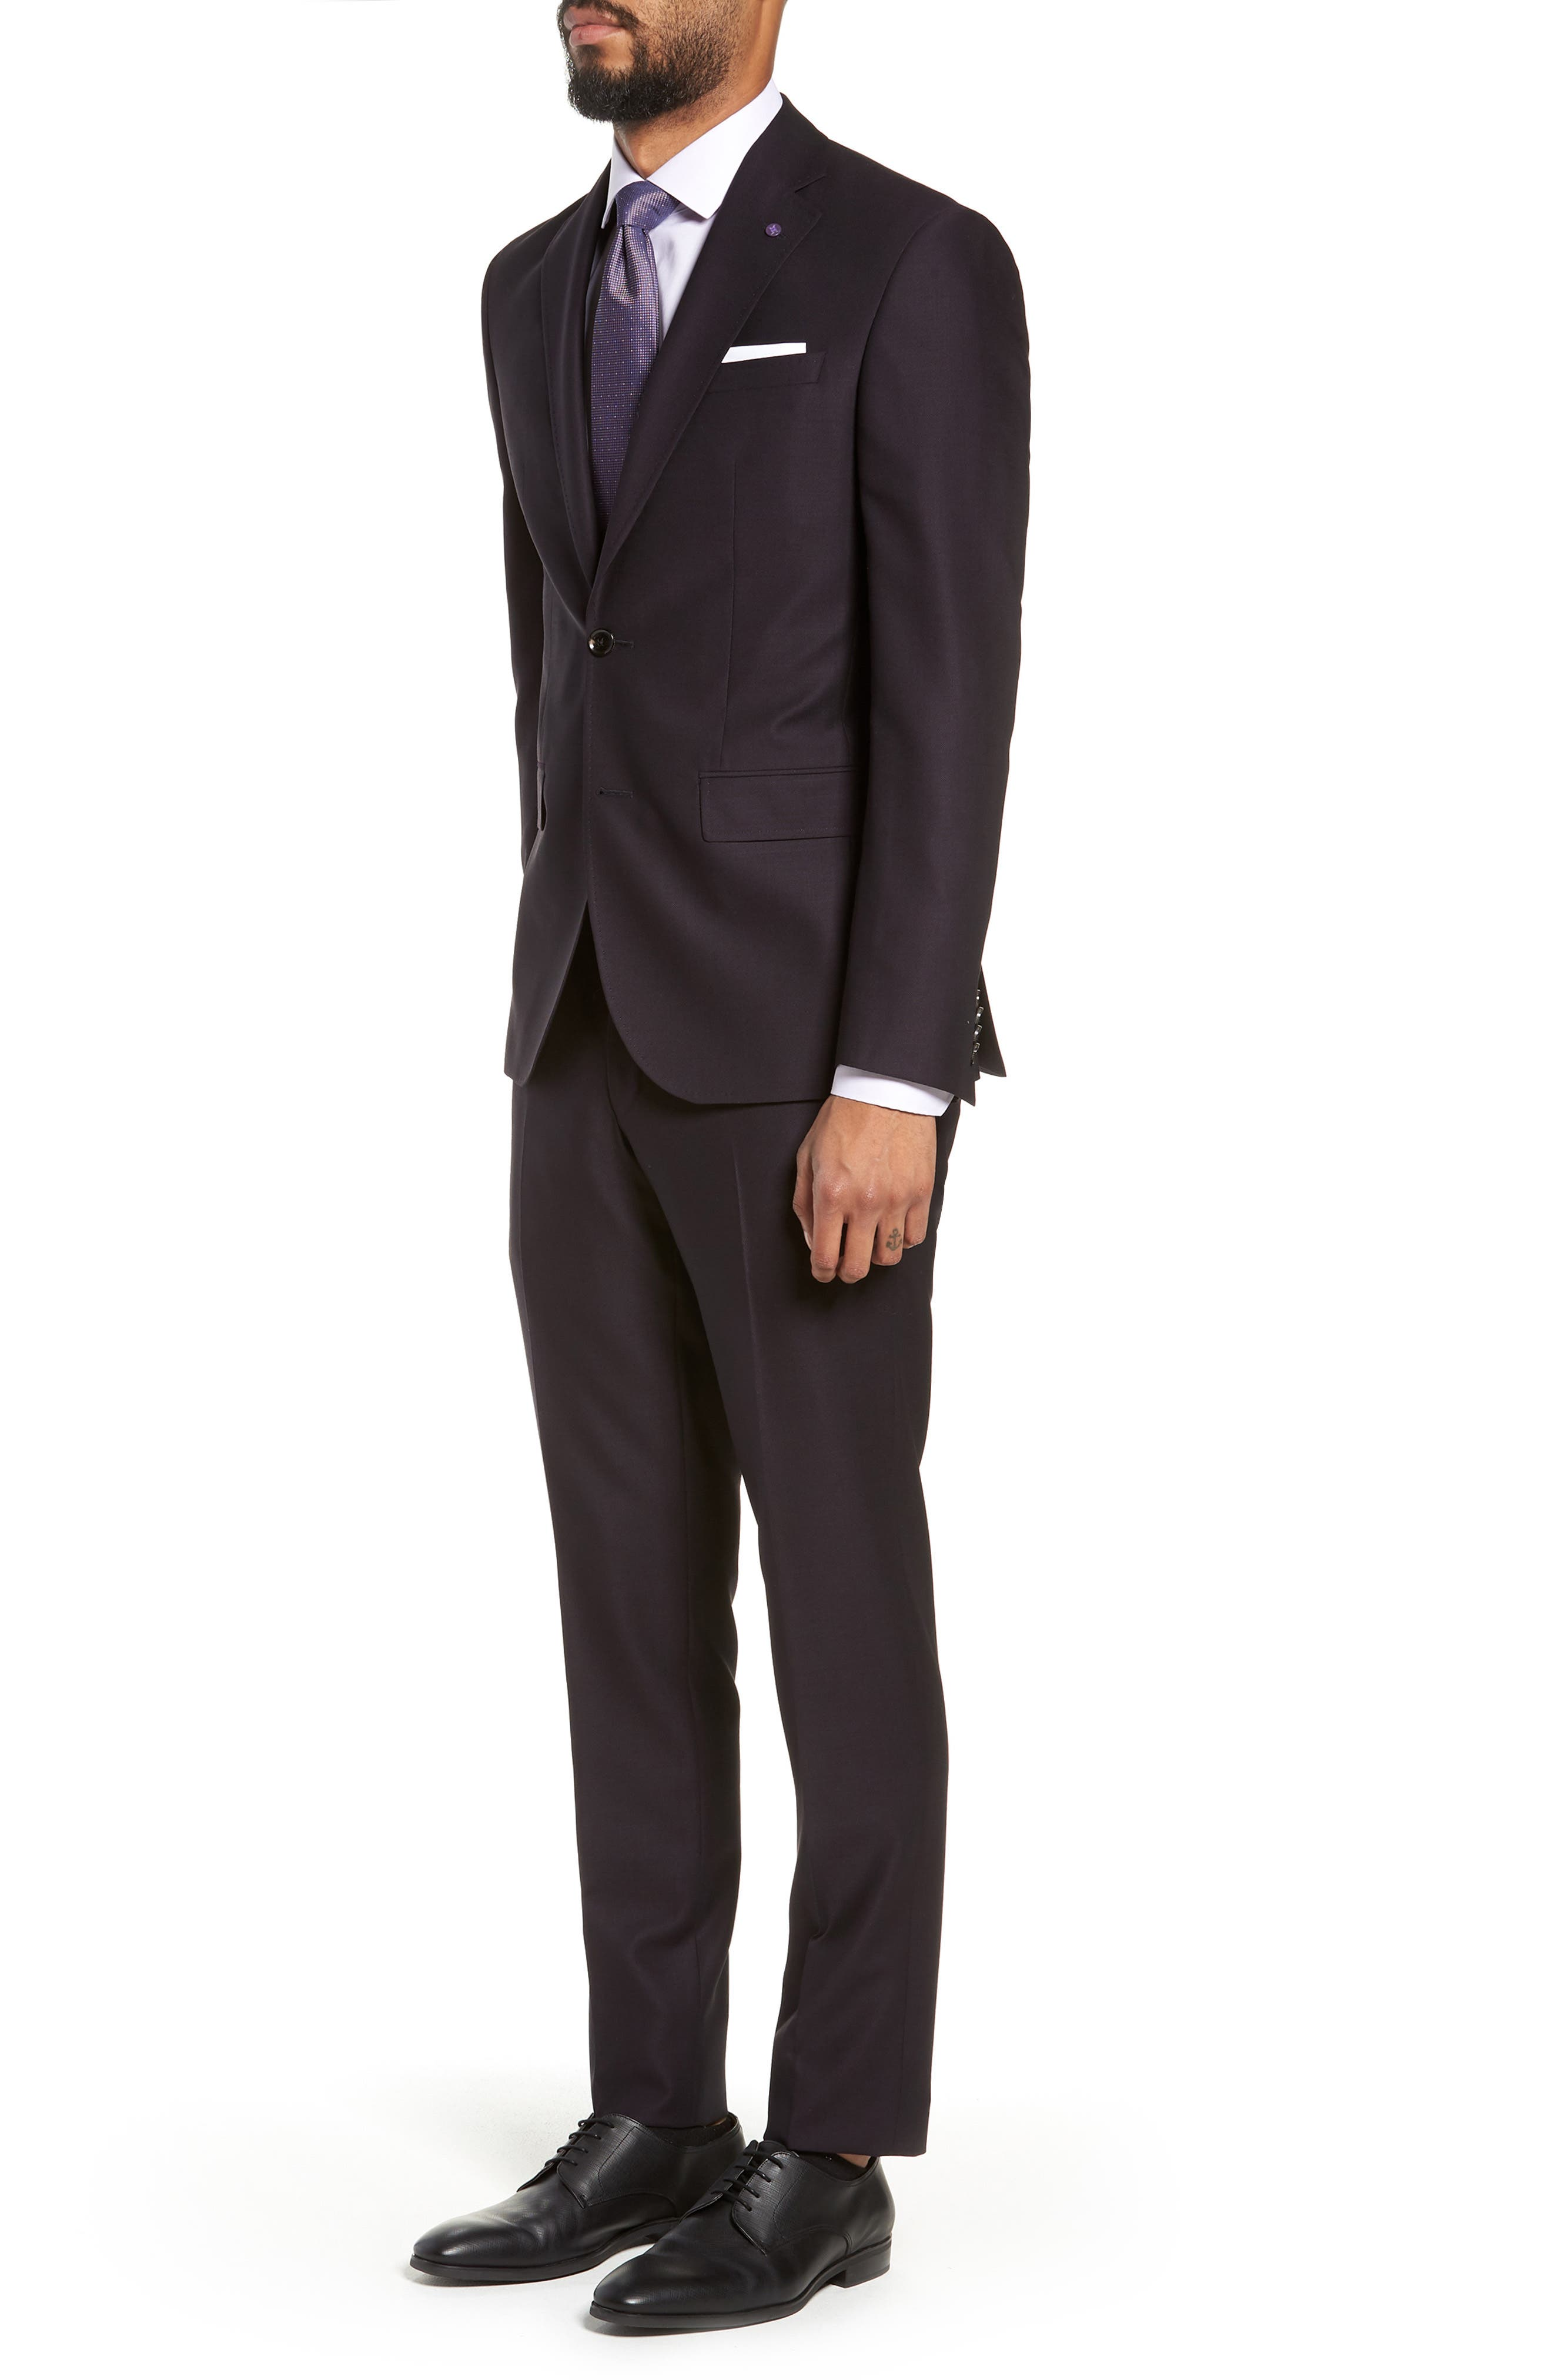 Roger Extra Trim Fit Solid Wool Suit,                             Alternate thumbnail 3, color,                             DEEP EGGPLANT